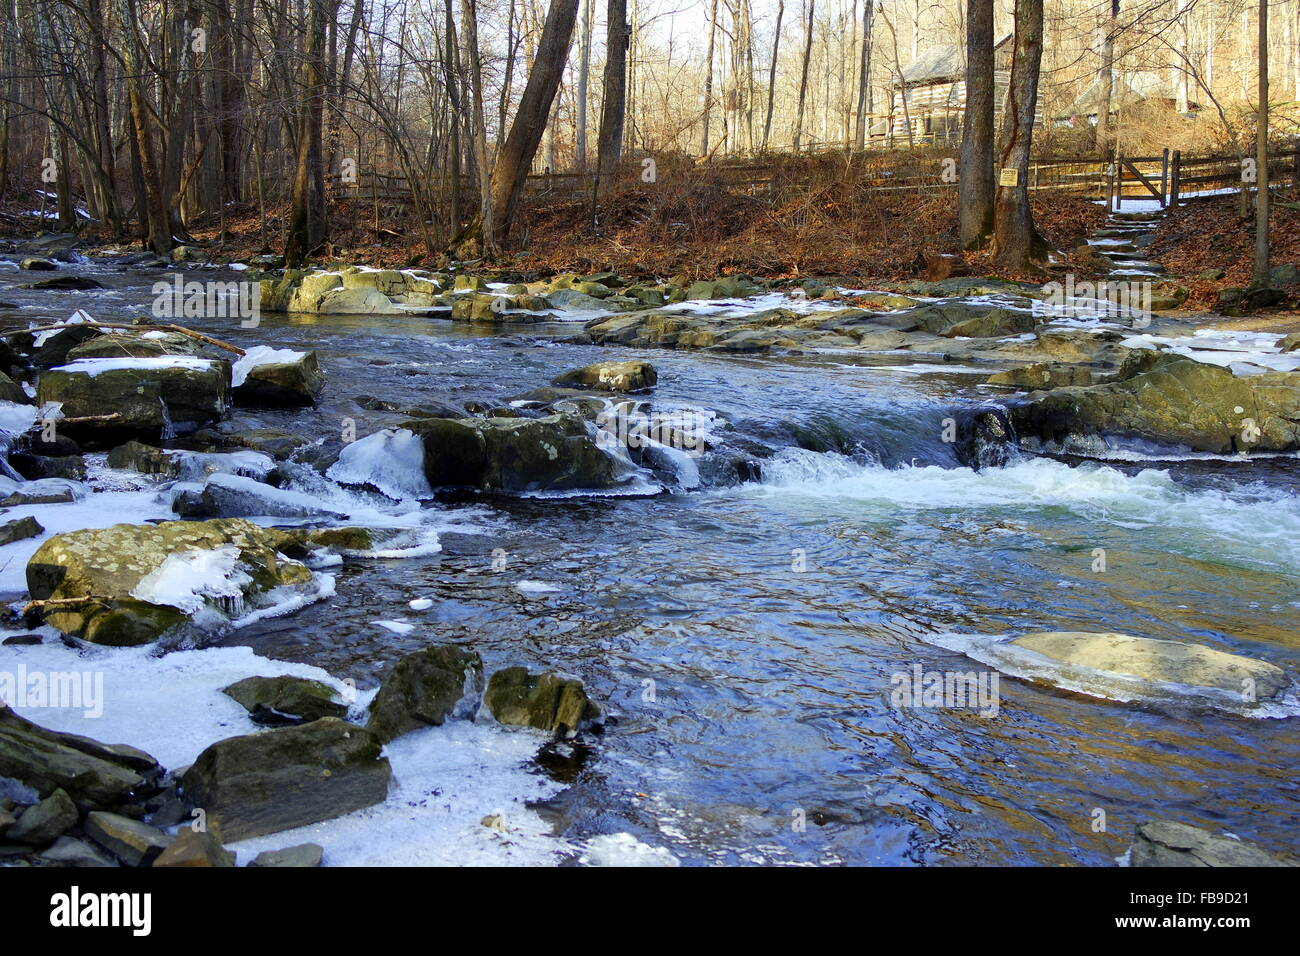 West Branch of Brandywine Creek meandering through Chester County, Pennsylvania. - Stock Image